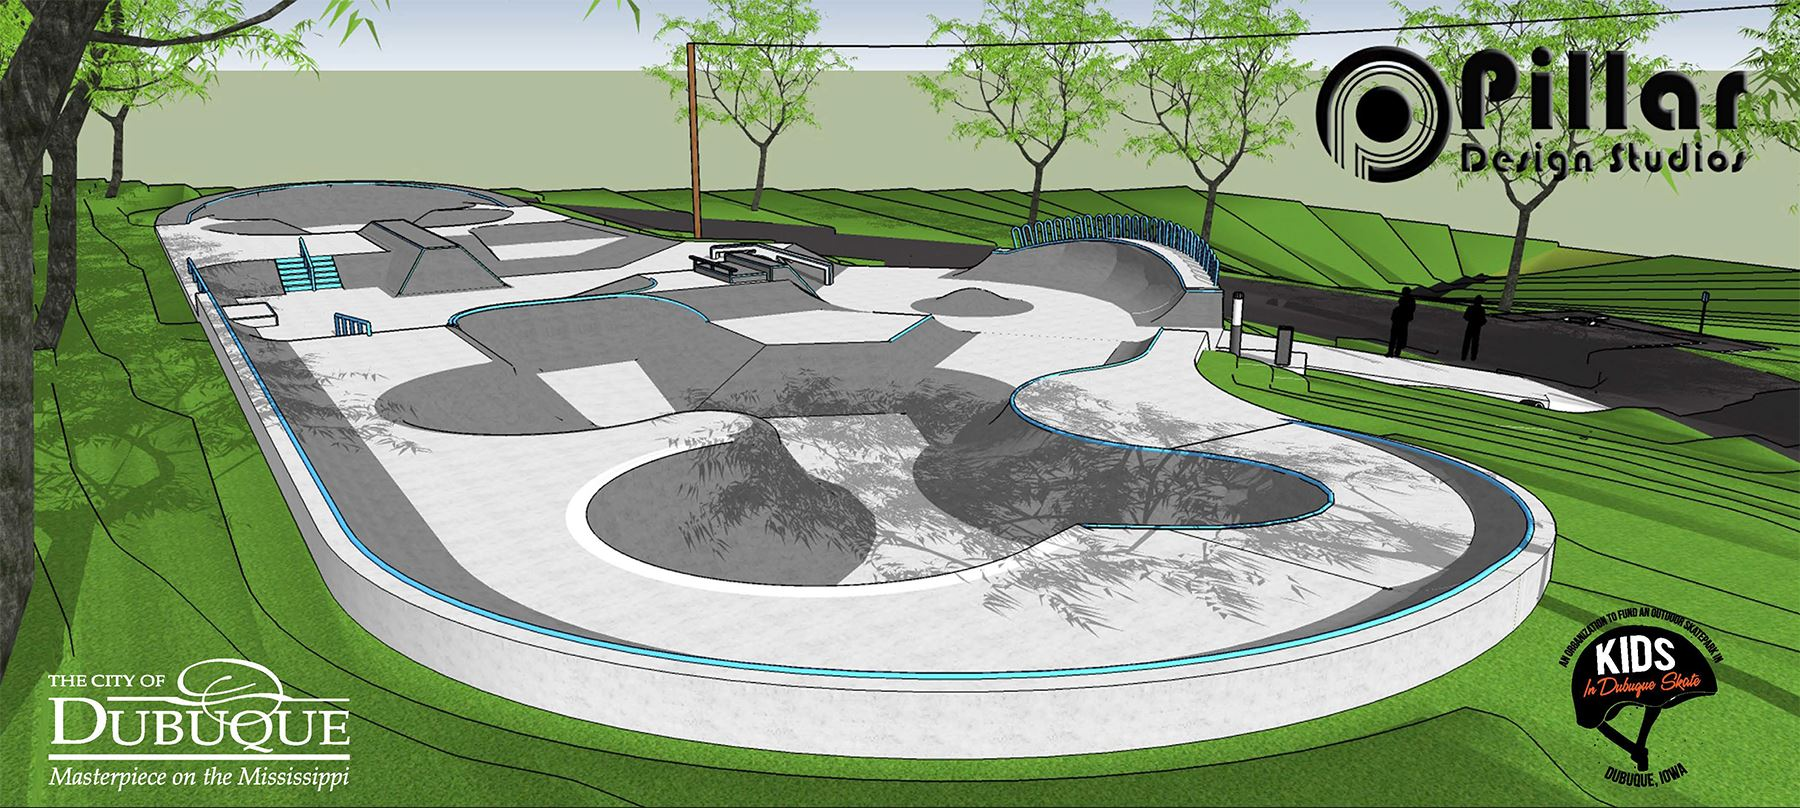 City of Dubuque Skate Park Rendering 1